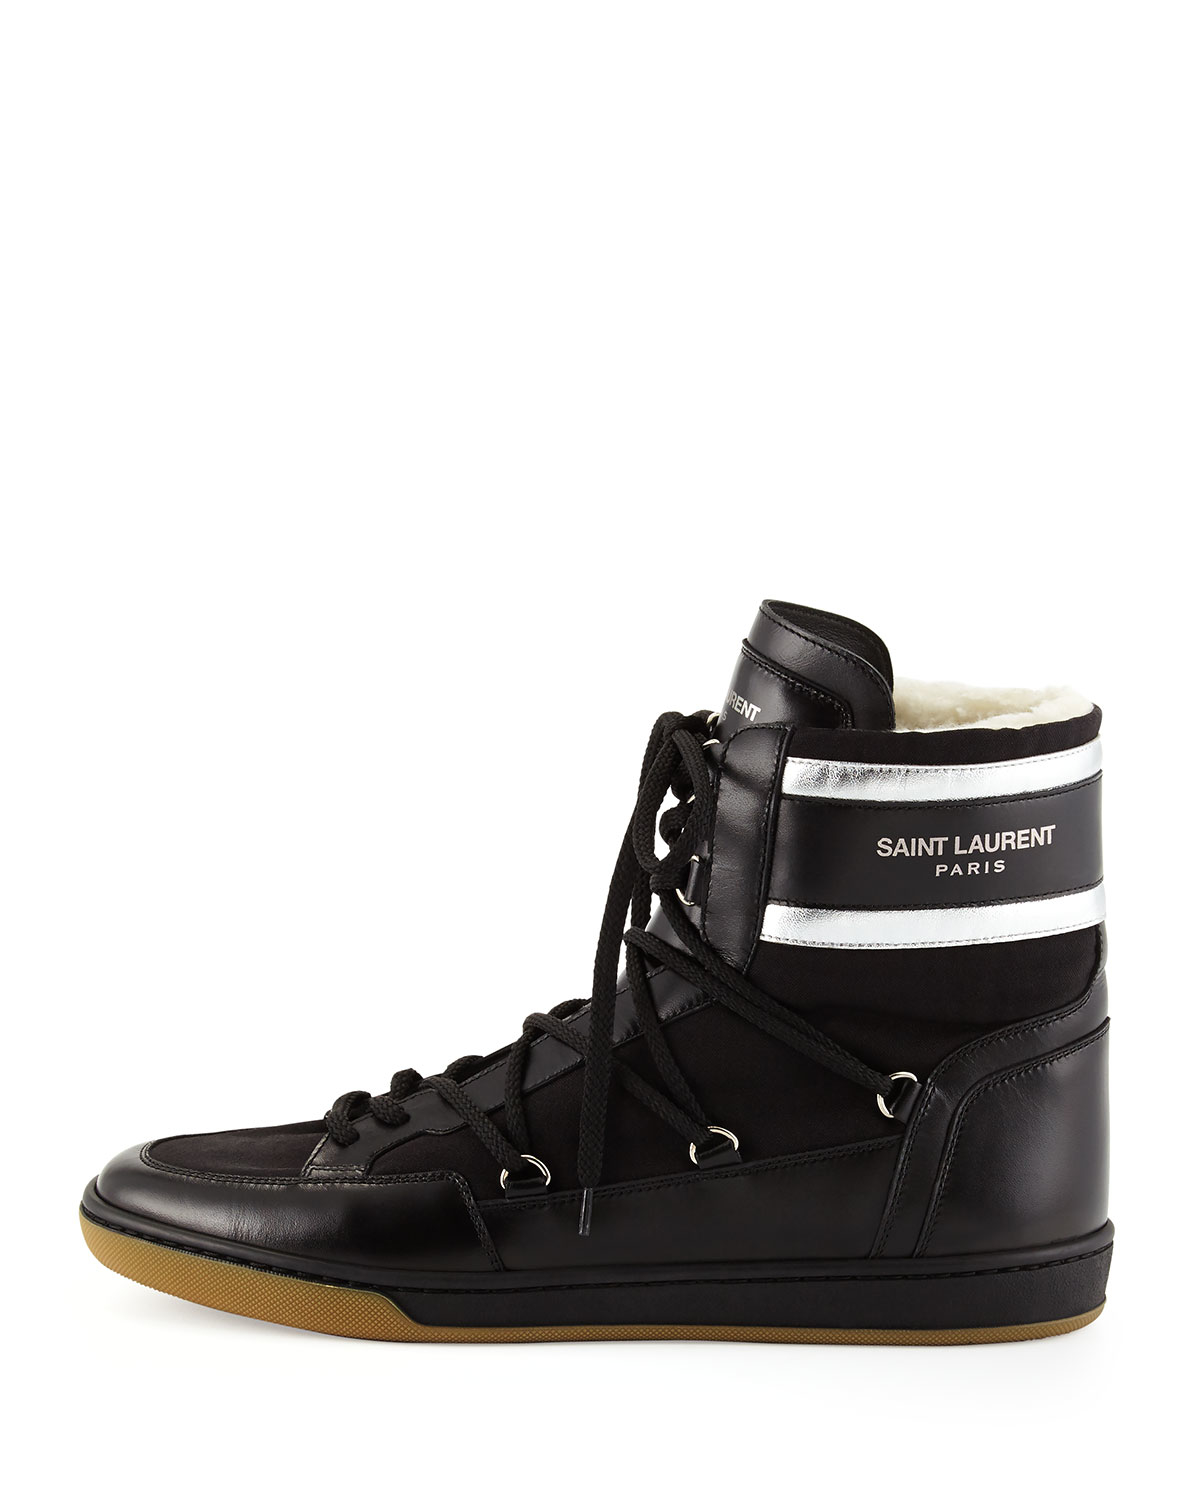 lyst saint laurent fur lined leather high top sneakers in black. Black Bedroom Furniture Sets. Home Design Ideas